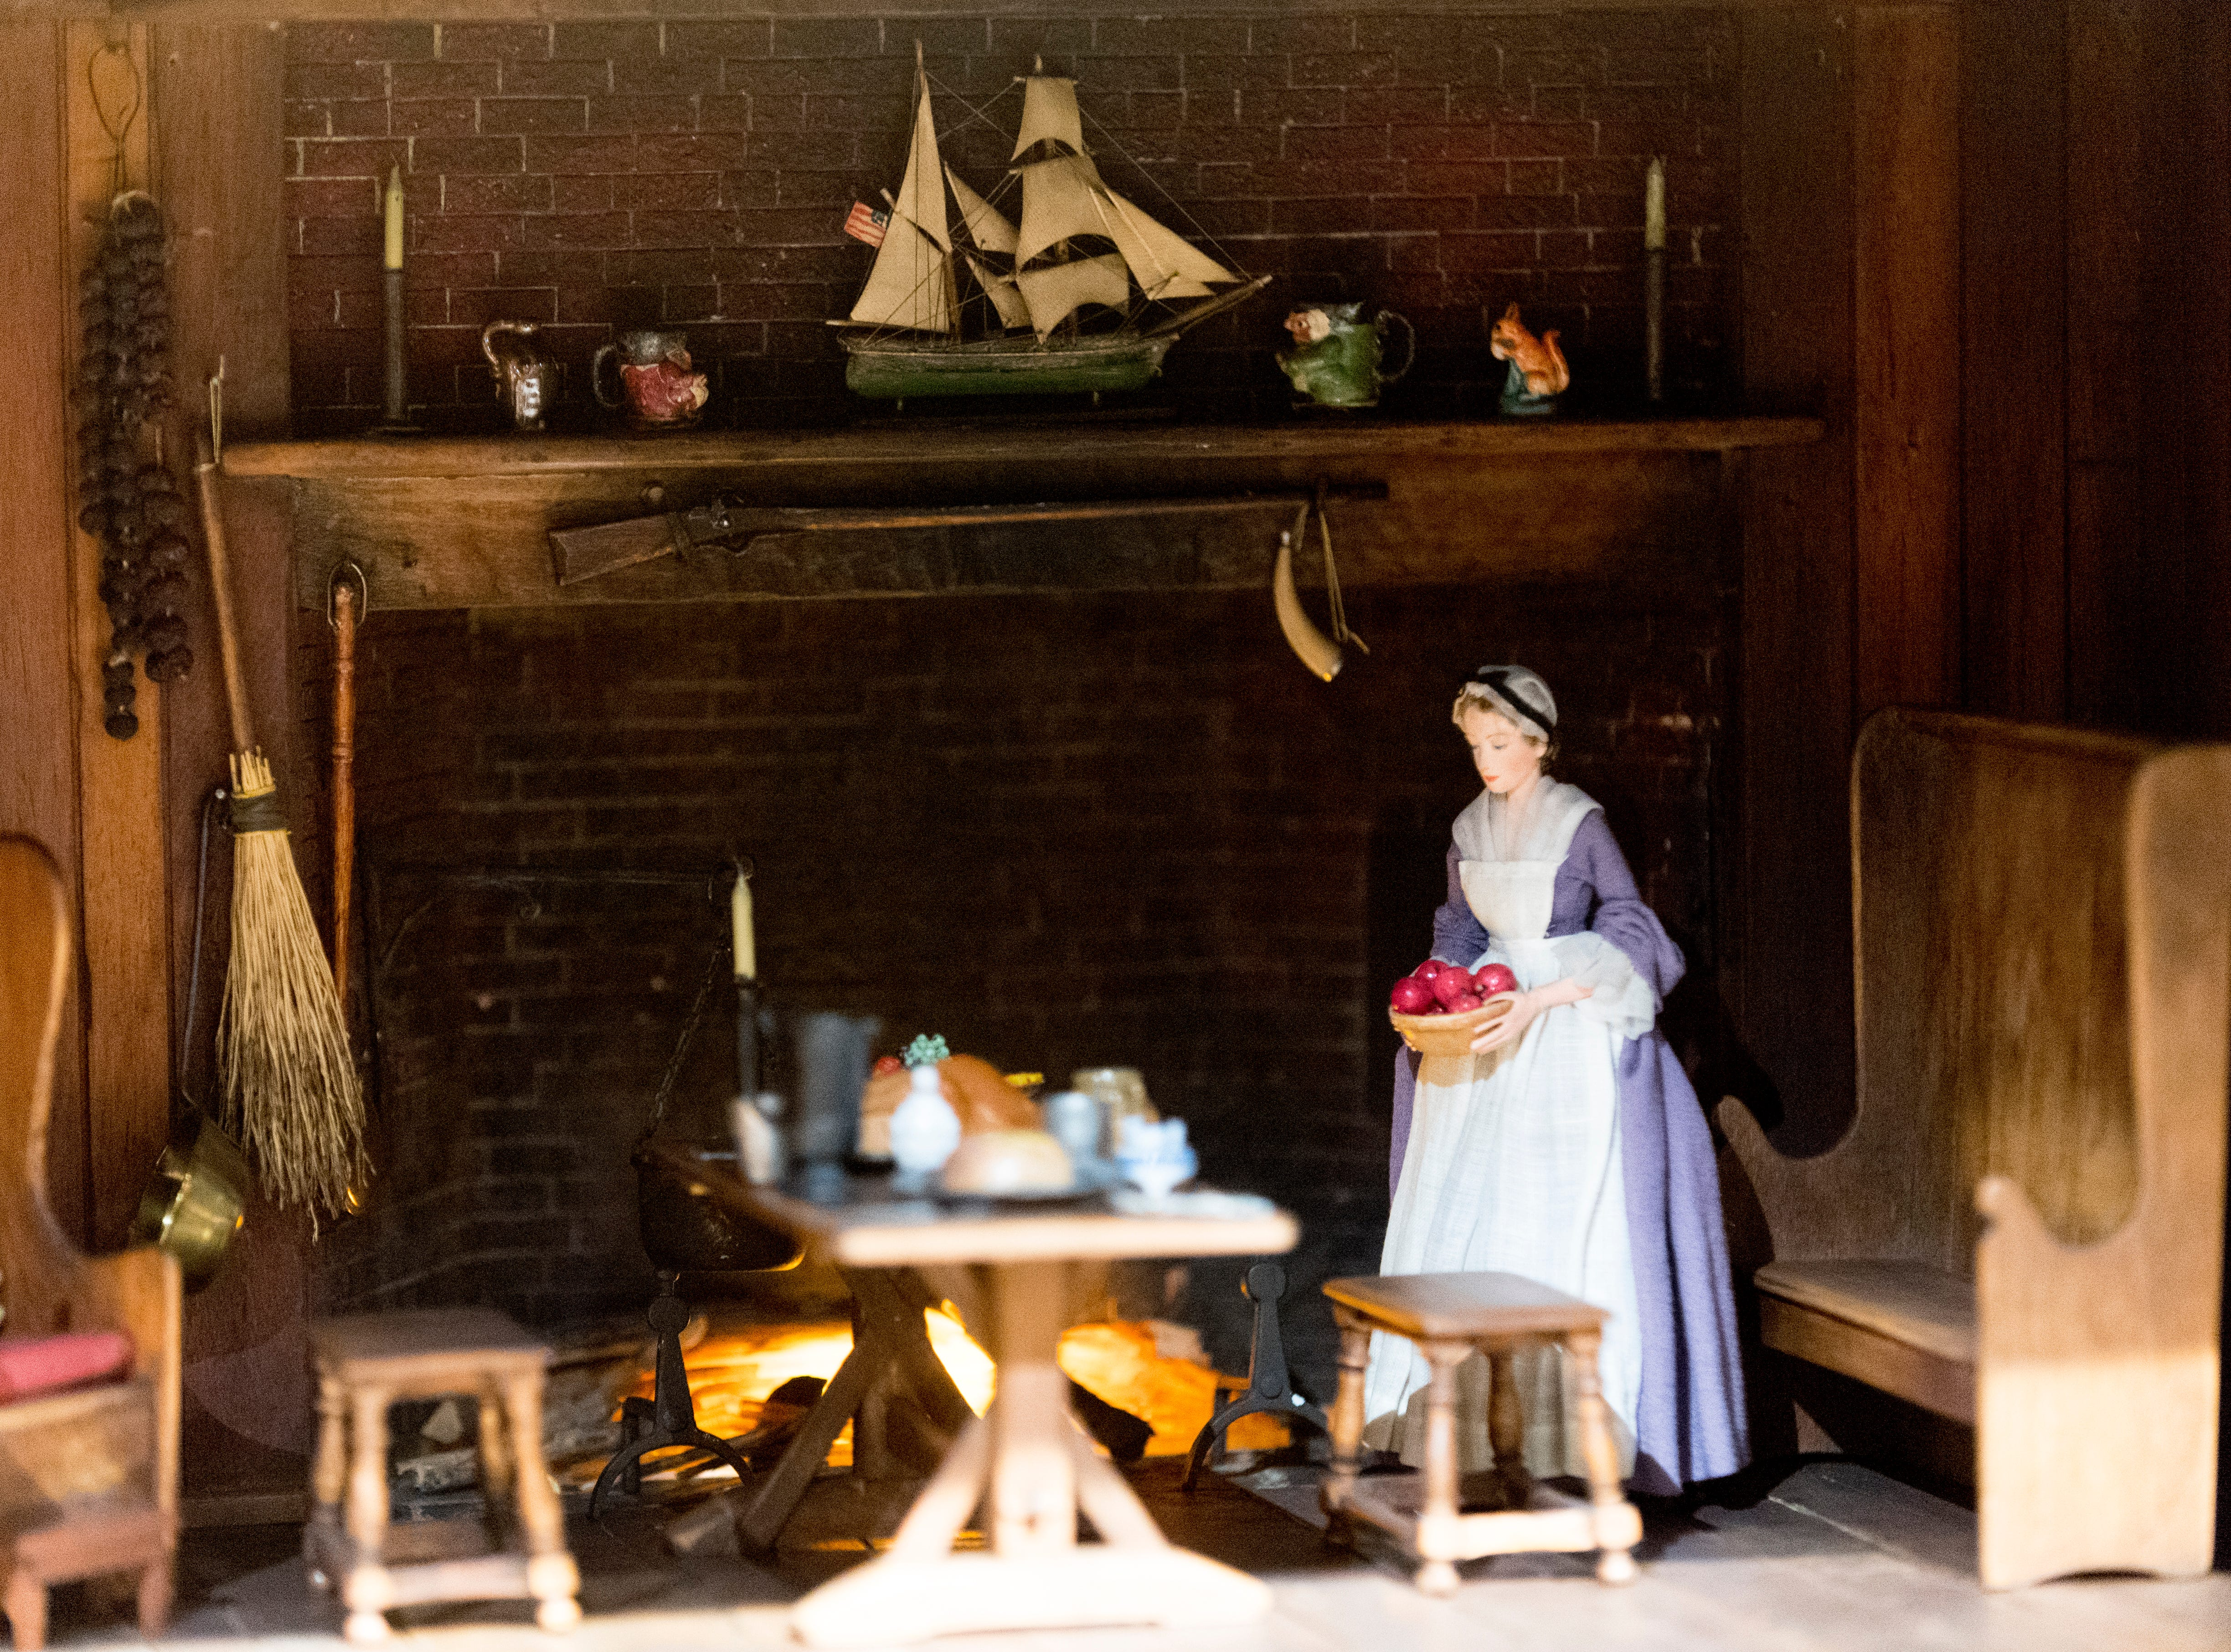 A view inside the Early American Kitchen display in the Thorne Room at the Knoxville Museum of Art in Knoxville, Tennessee on Tuesday, August 21, 2018. The nine miniature rooms were created in the 1930s and 40s by Narcissa Niblack Thorne to a scale of one inch to one foot.